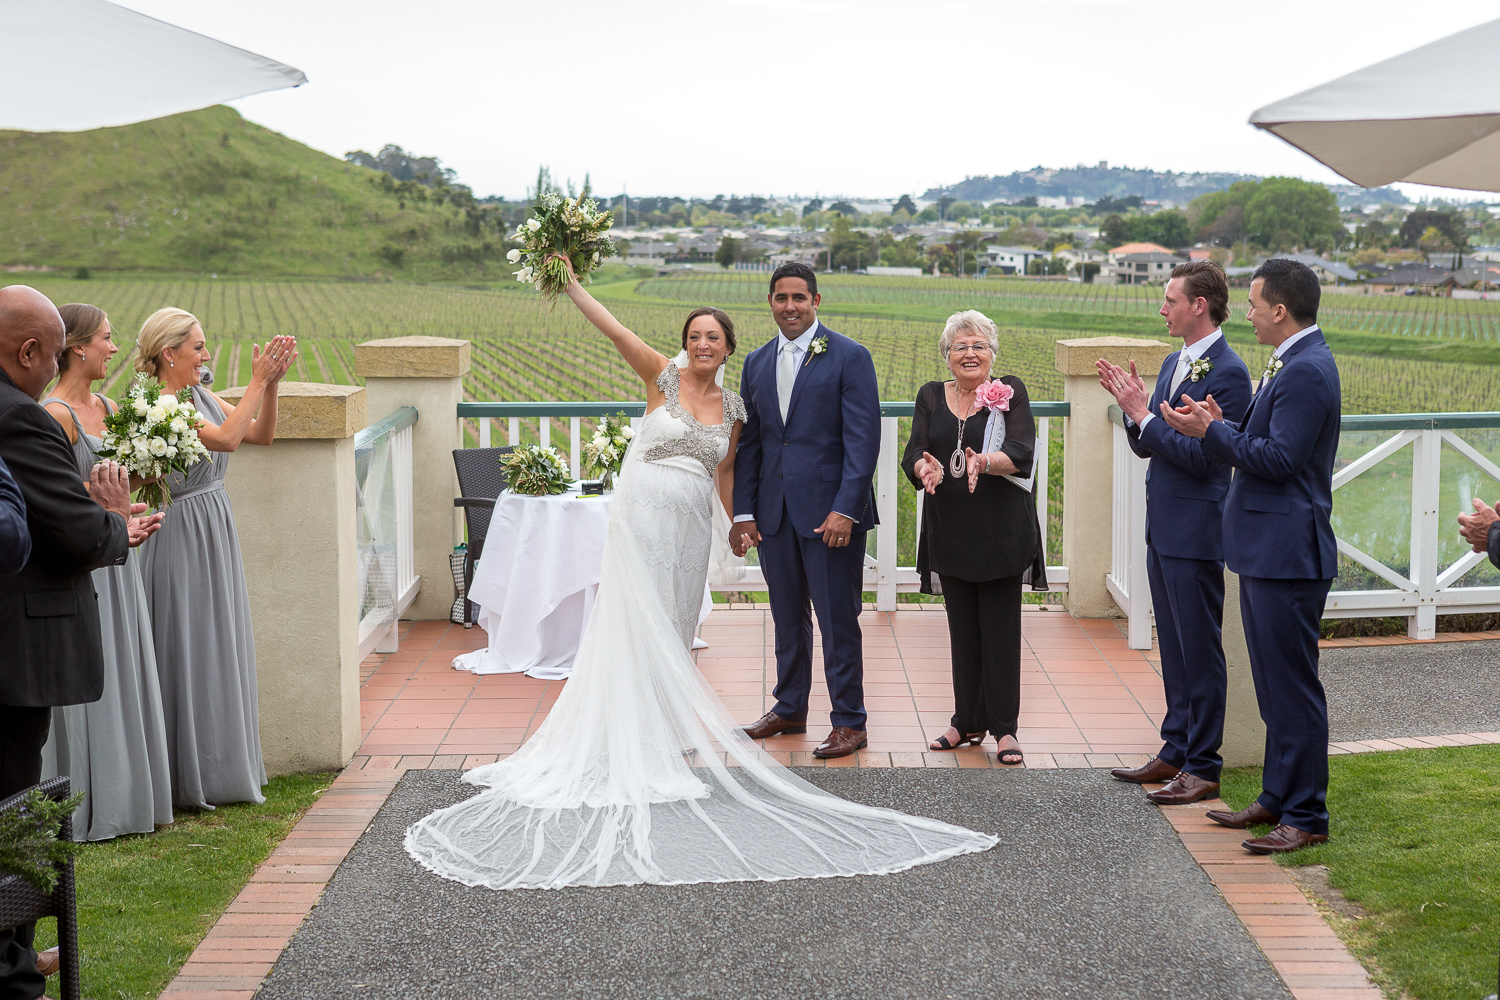 weddings-at-the-mission-nz